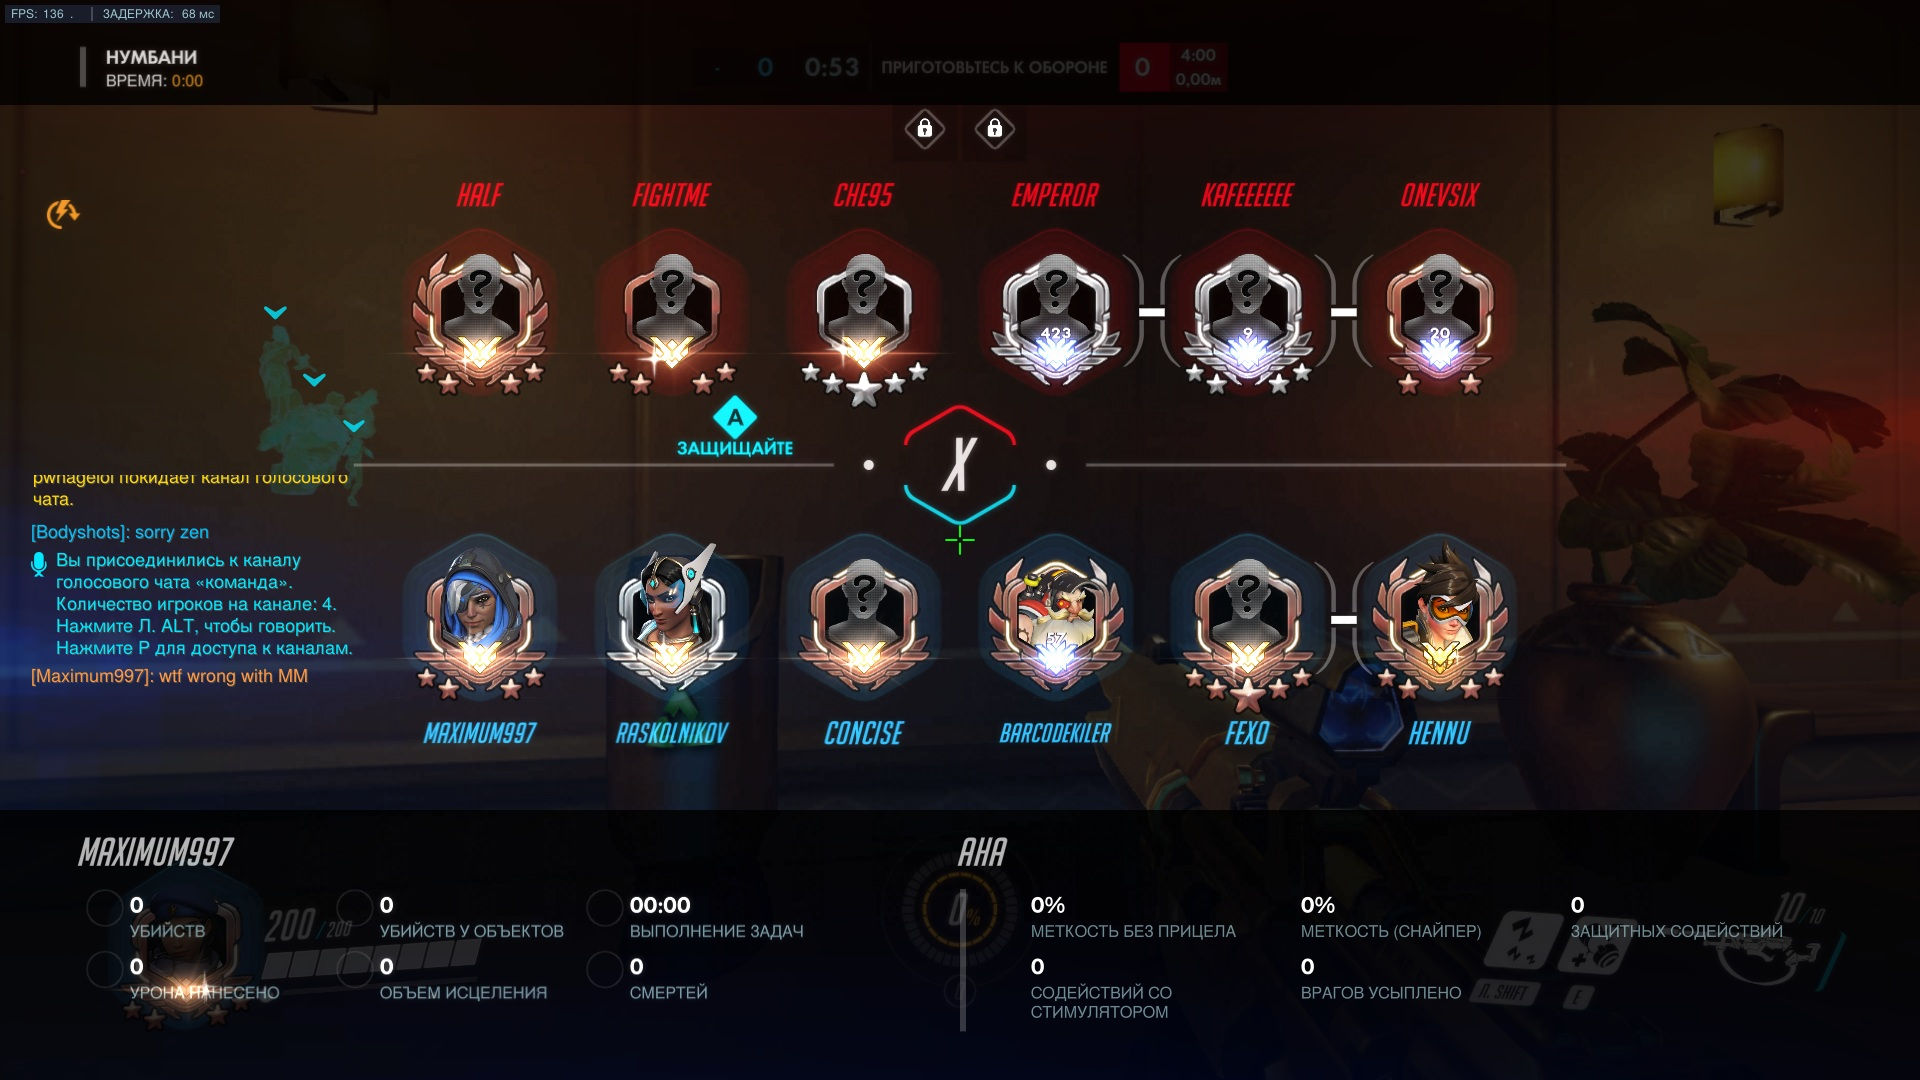 overwatch matchmaking is still terrible